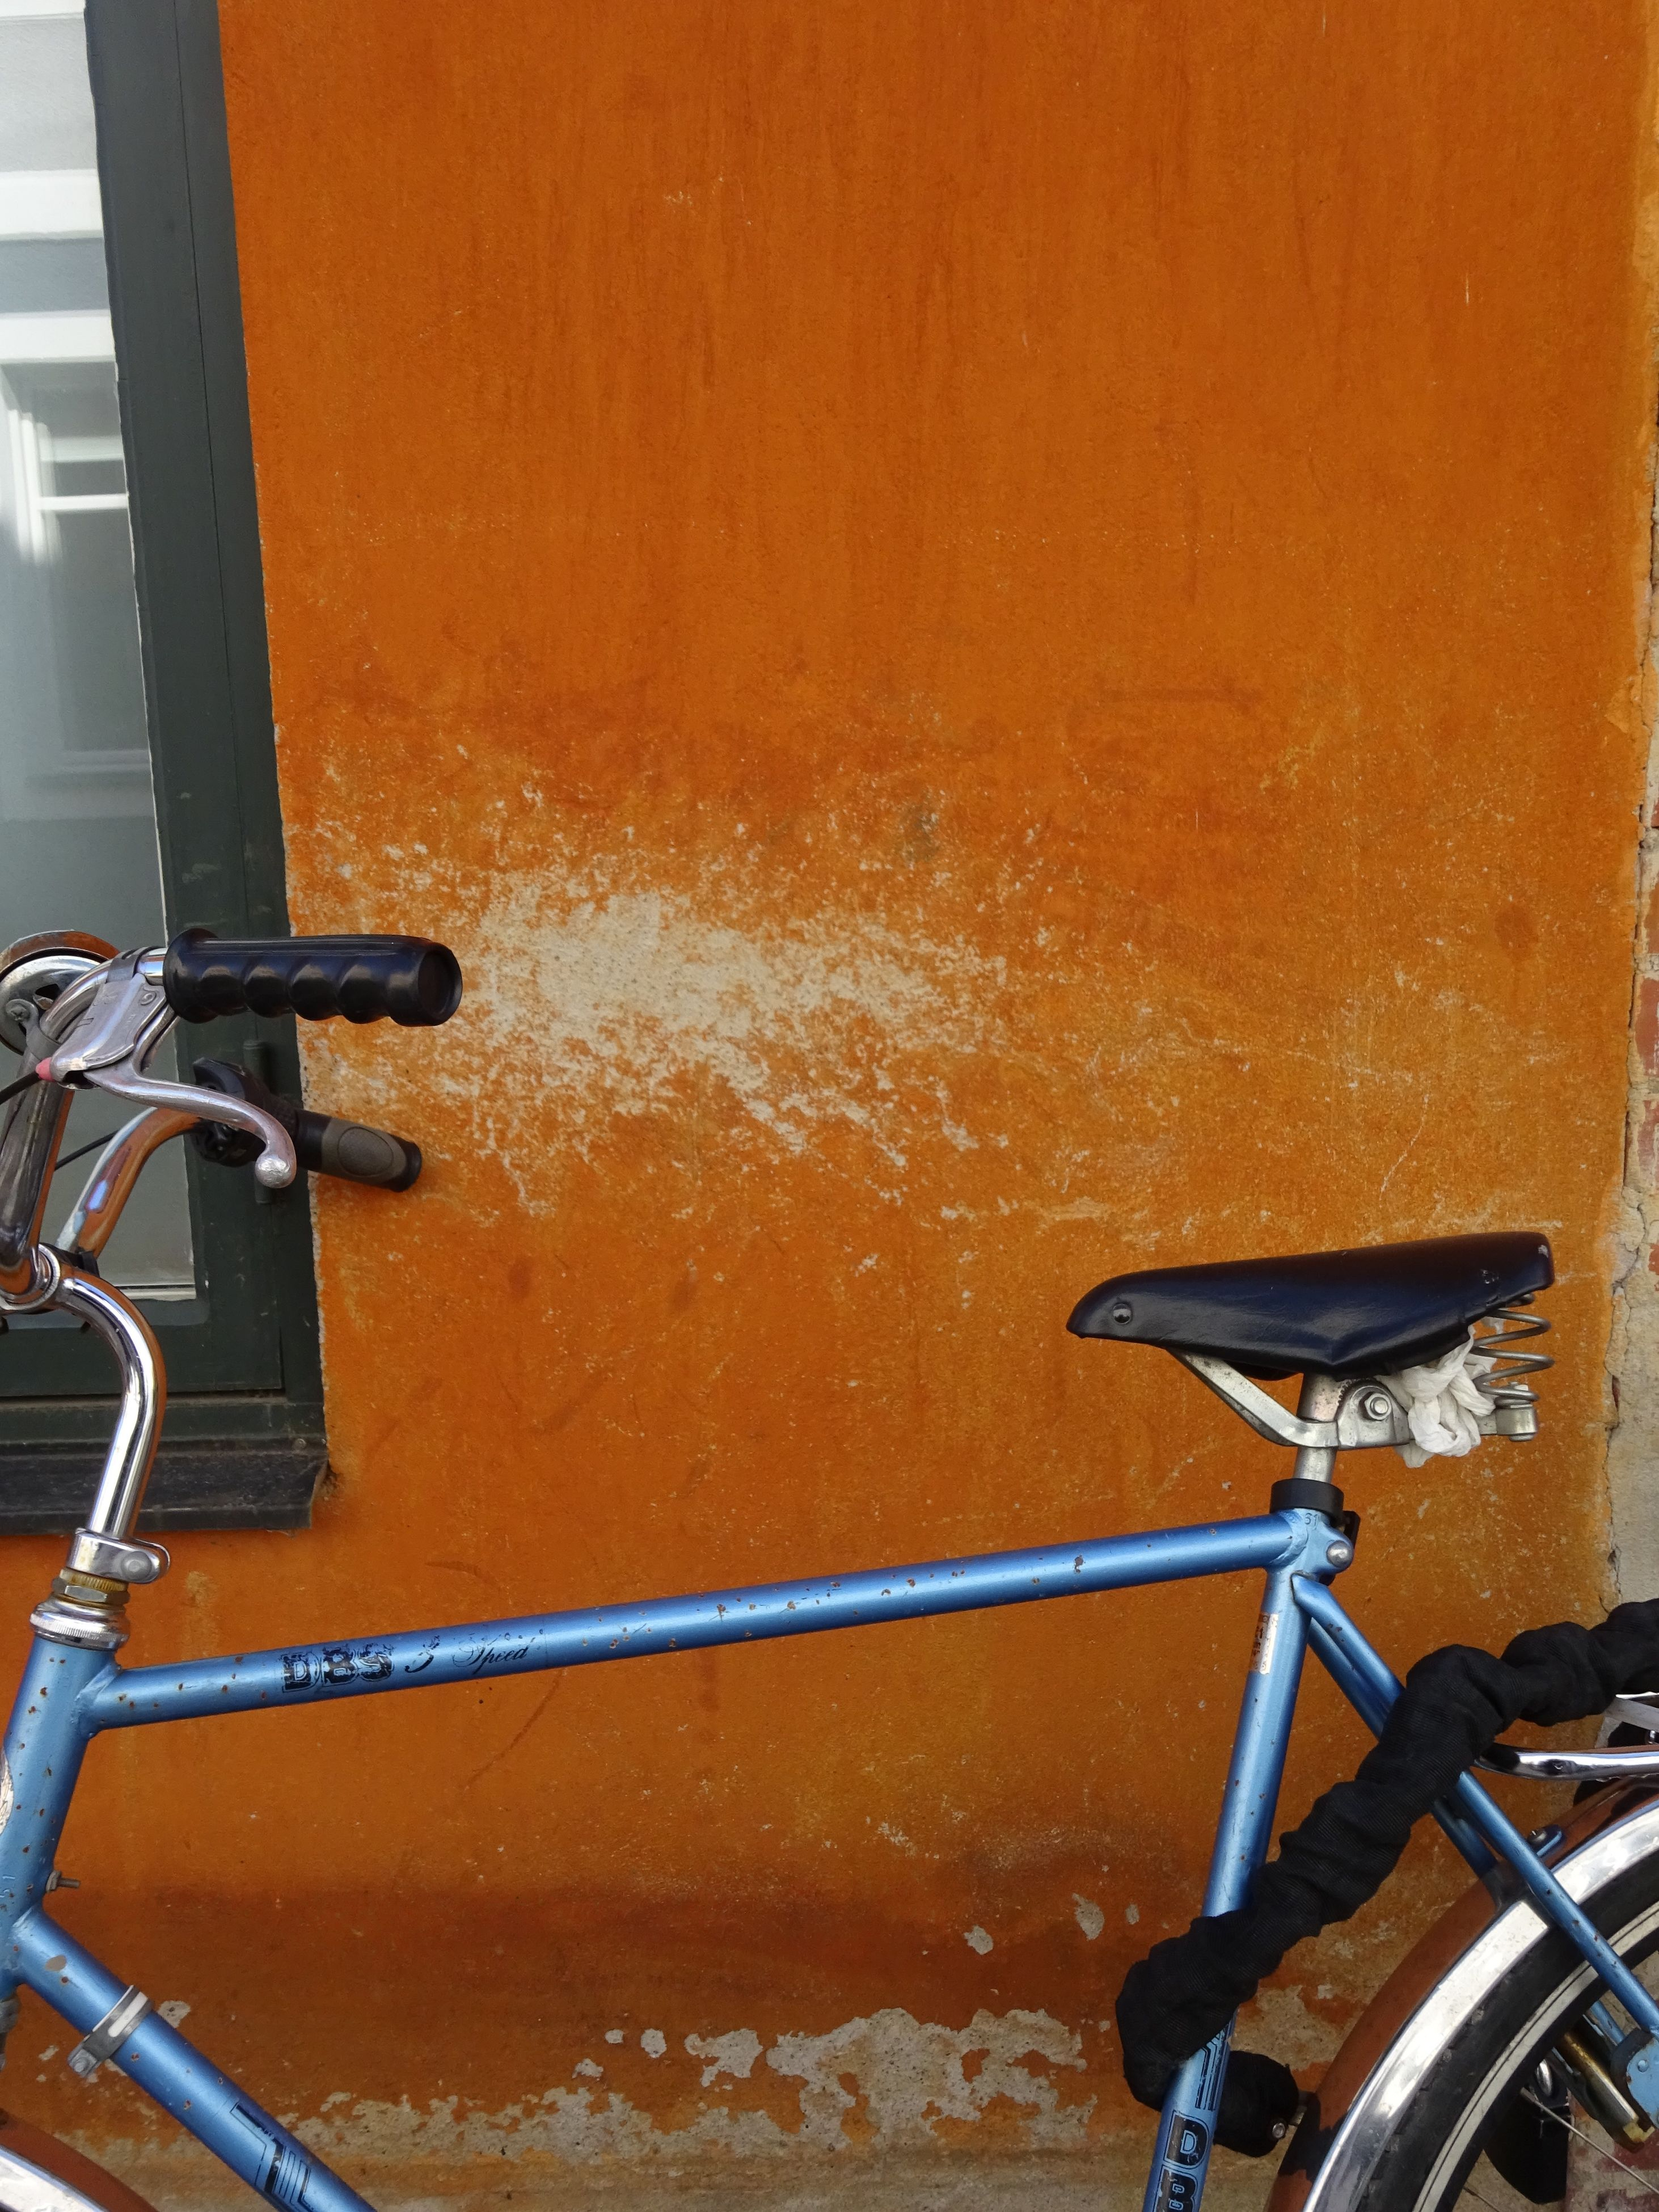 transportation, no people, bicycle, outdoors, day, close-up